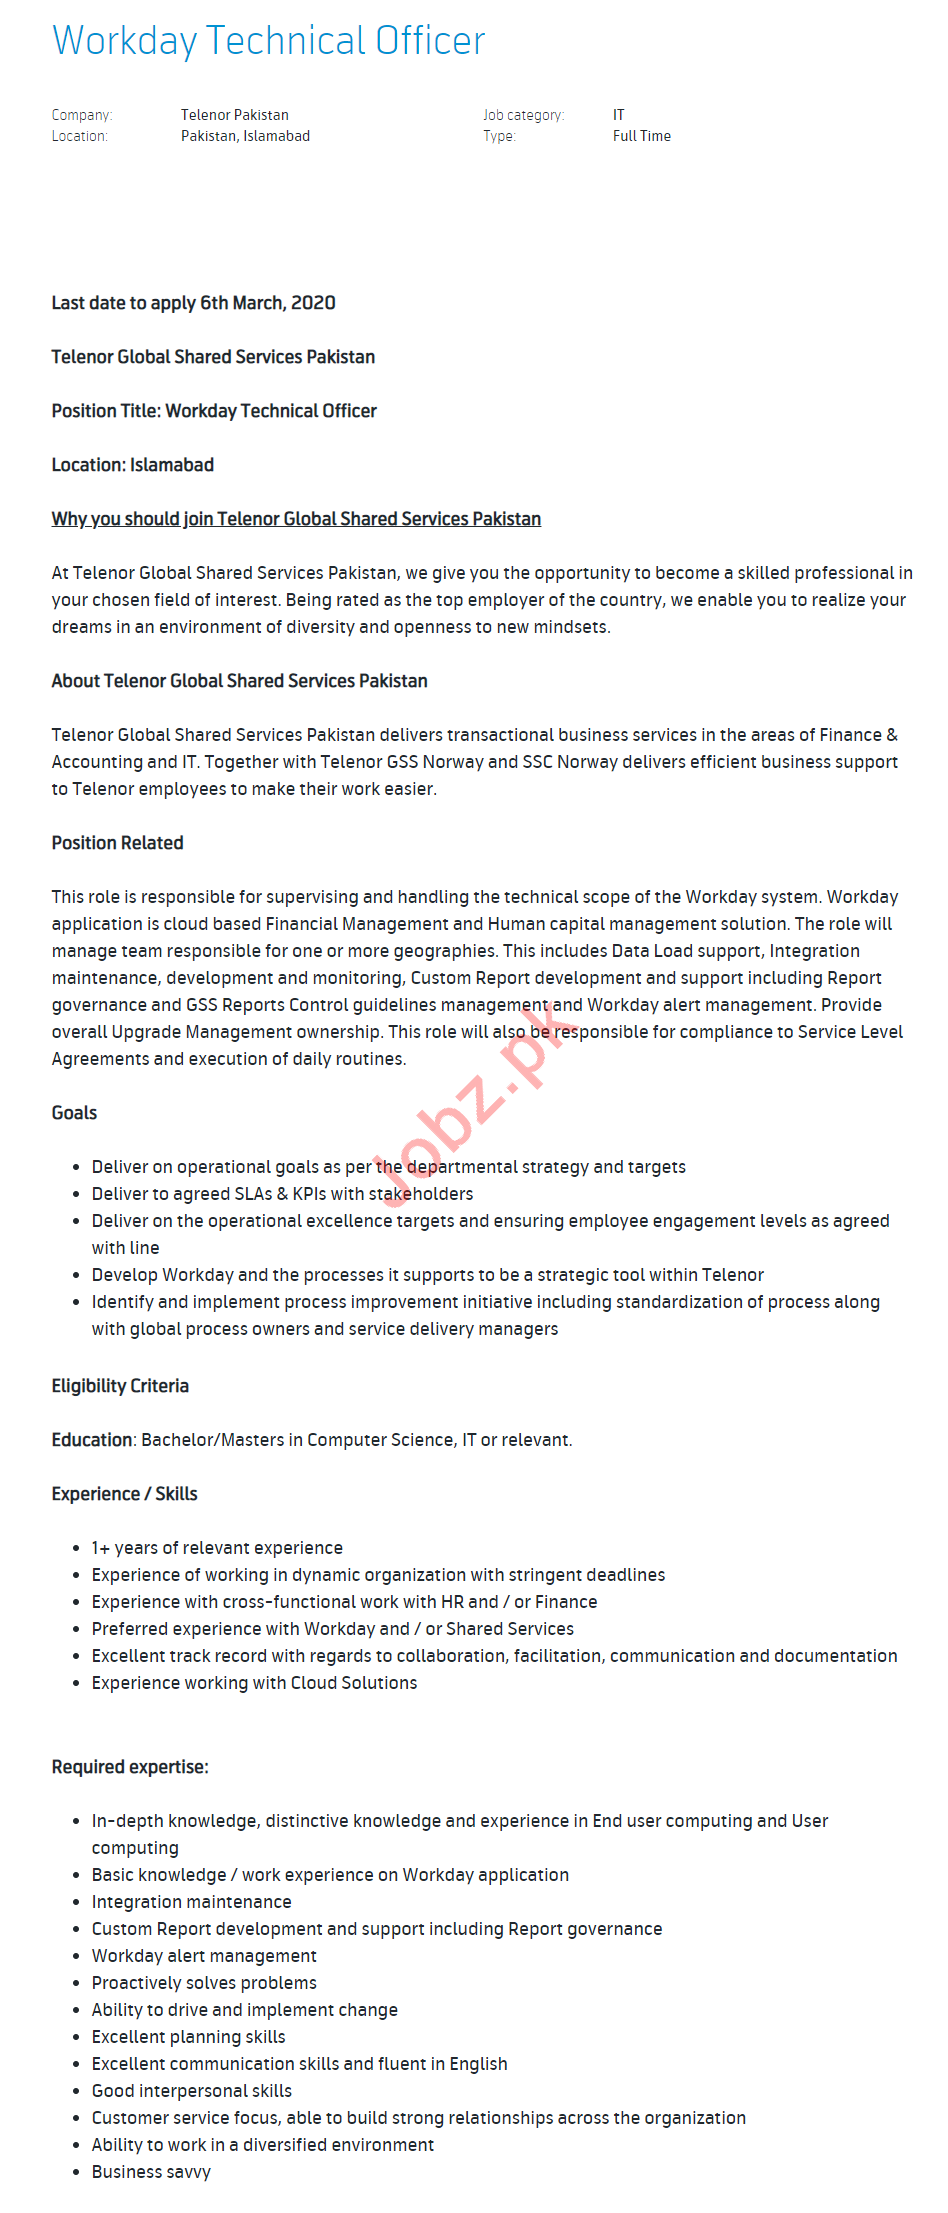 Telenor Pakistan Jobs 2020 for Workday Technical Officer